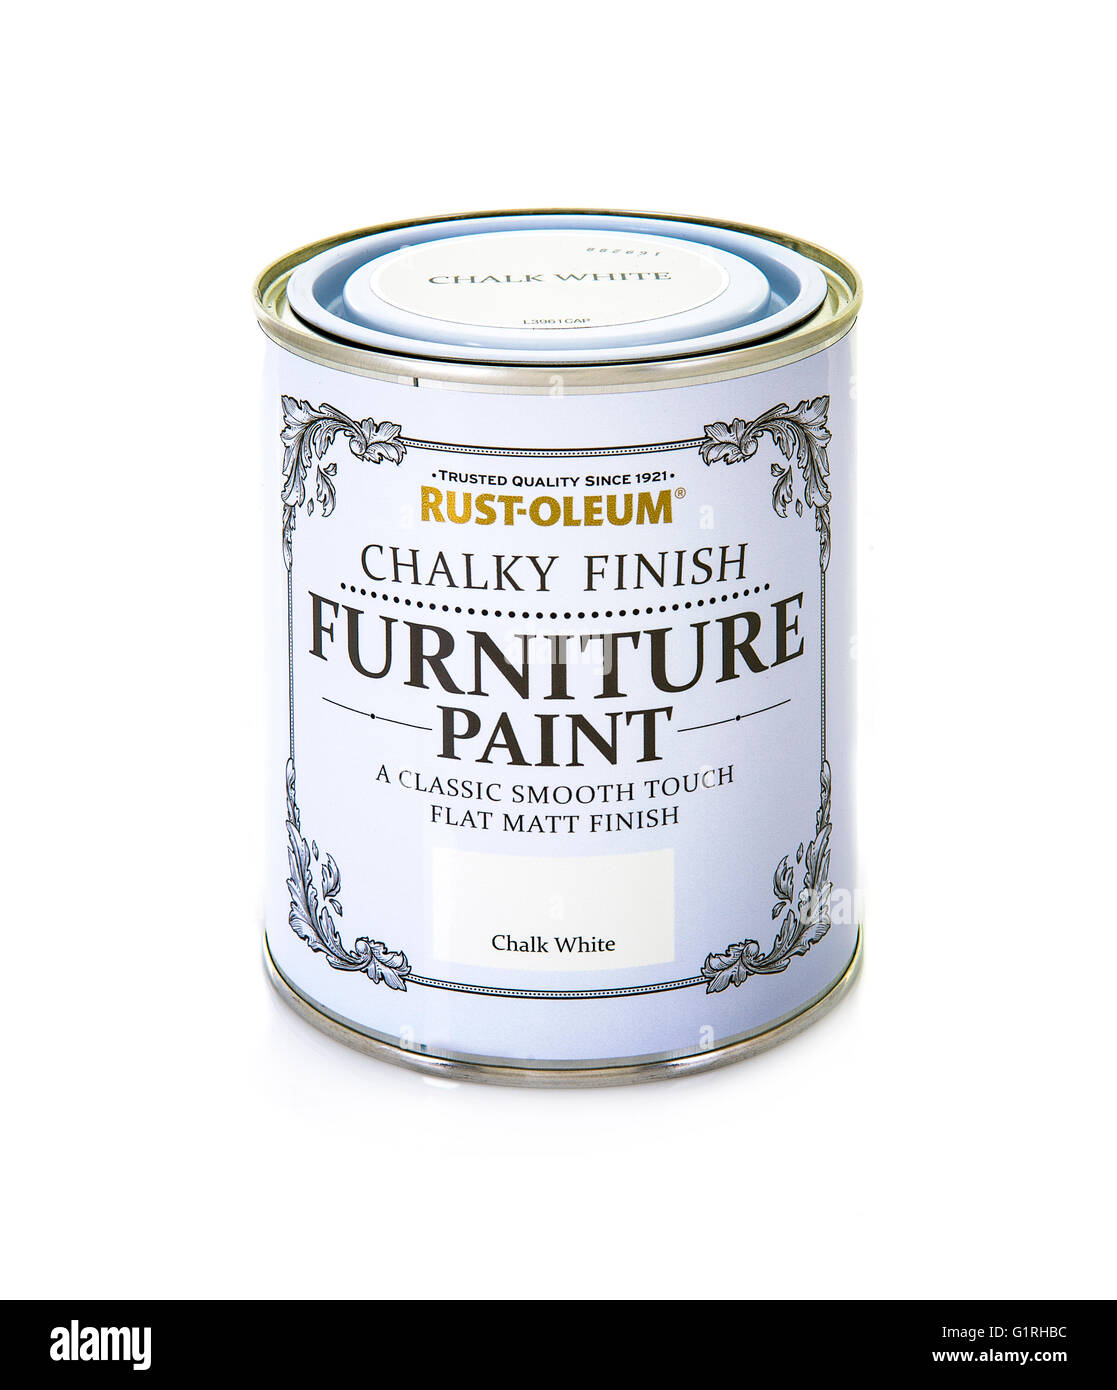 Rust-oleum Chalky Finish Furniture Paint on a white background - Stock Image